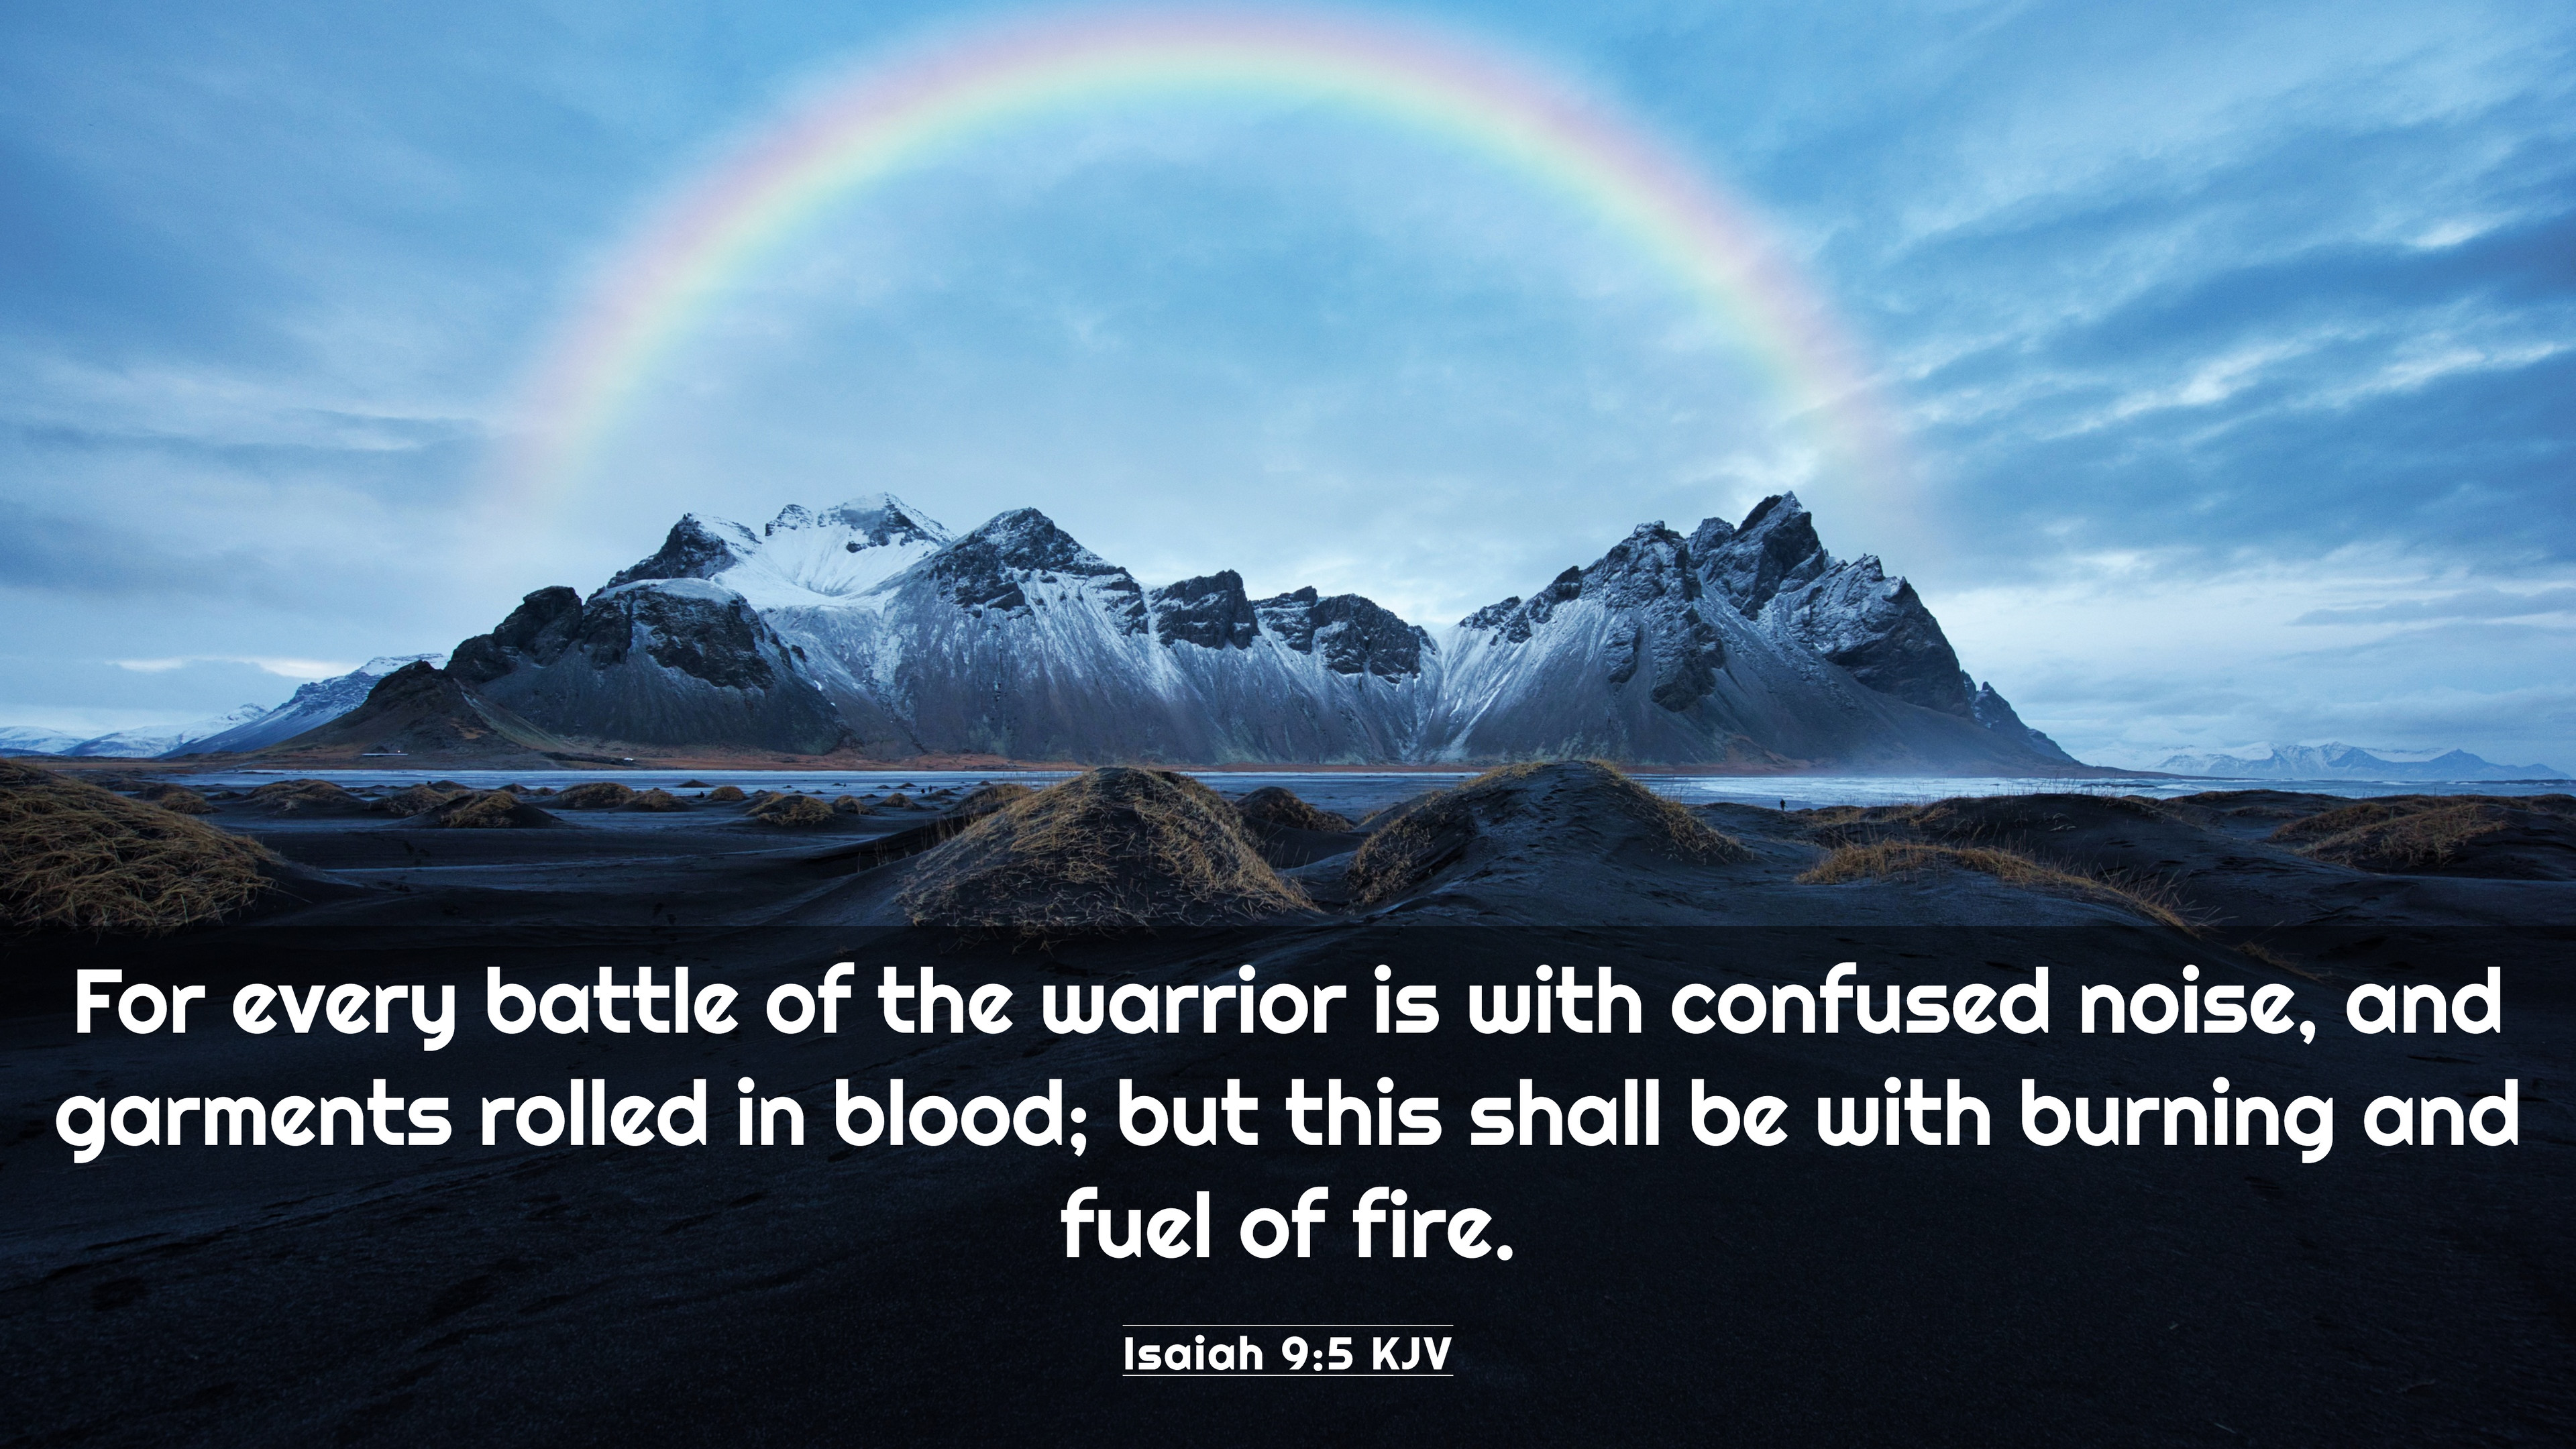 Isaiah 9:5 KJV 4K Wallpaper - For every battle of the warrior is with  confused